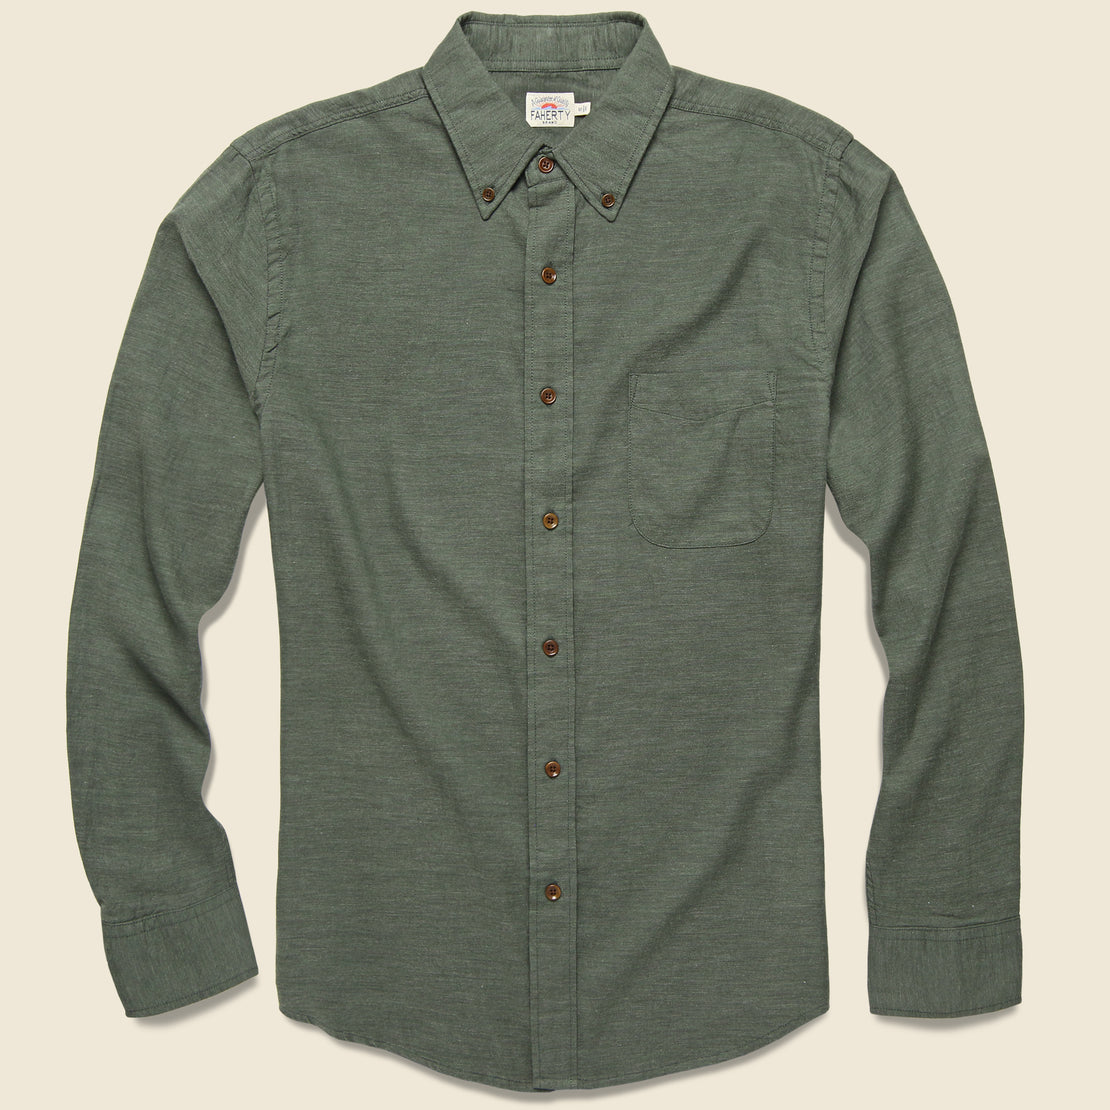 Faherty Melange Oxford Shirt - Spruce